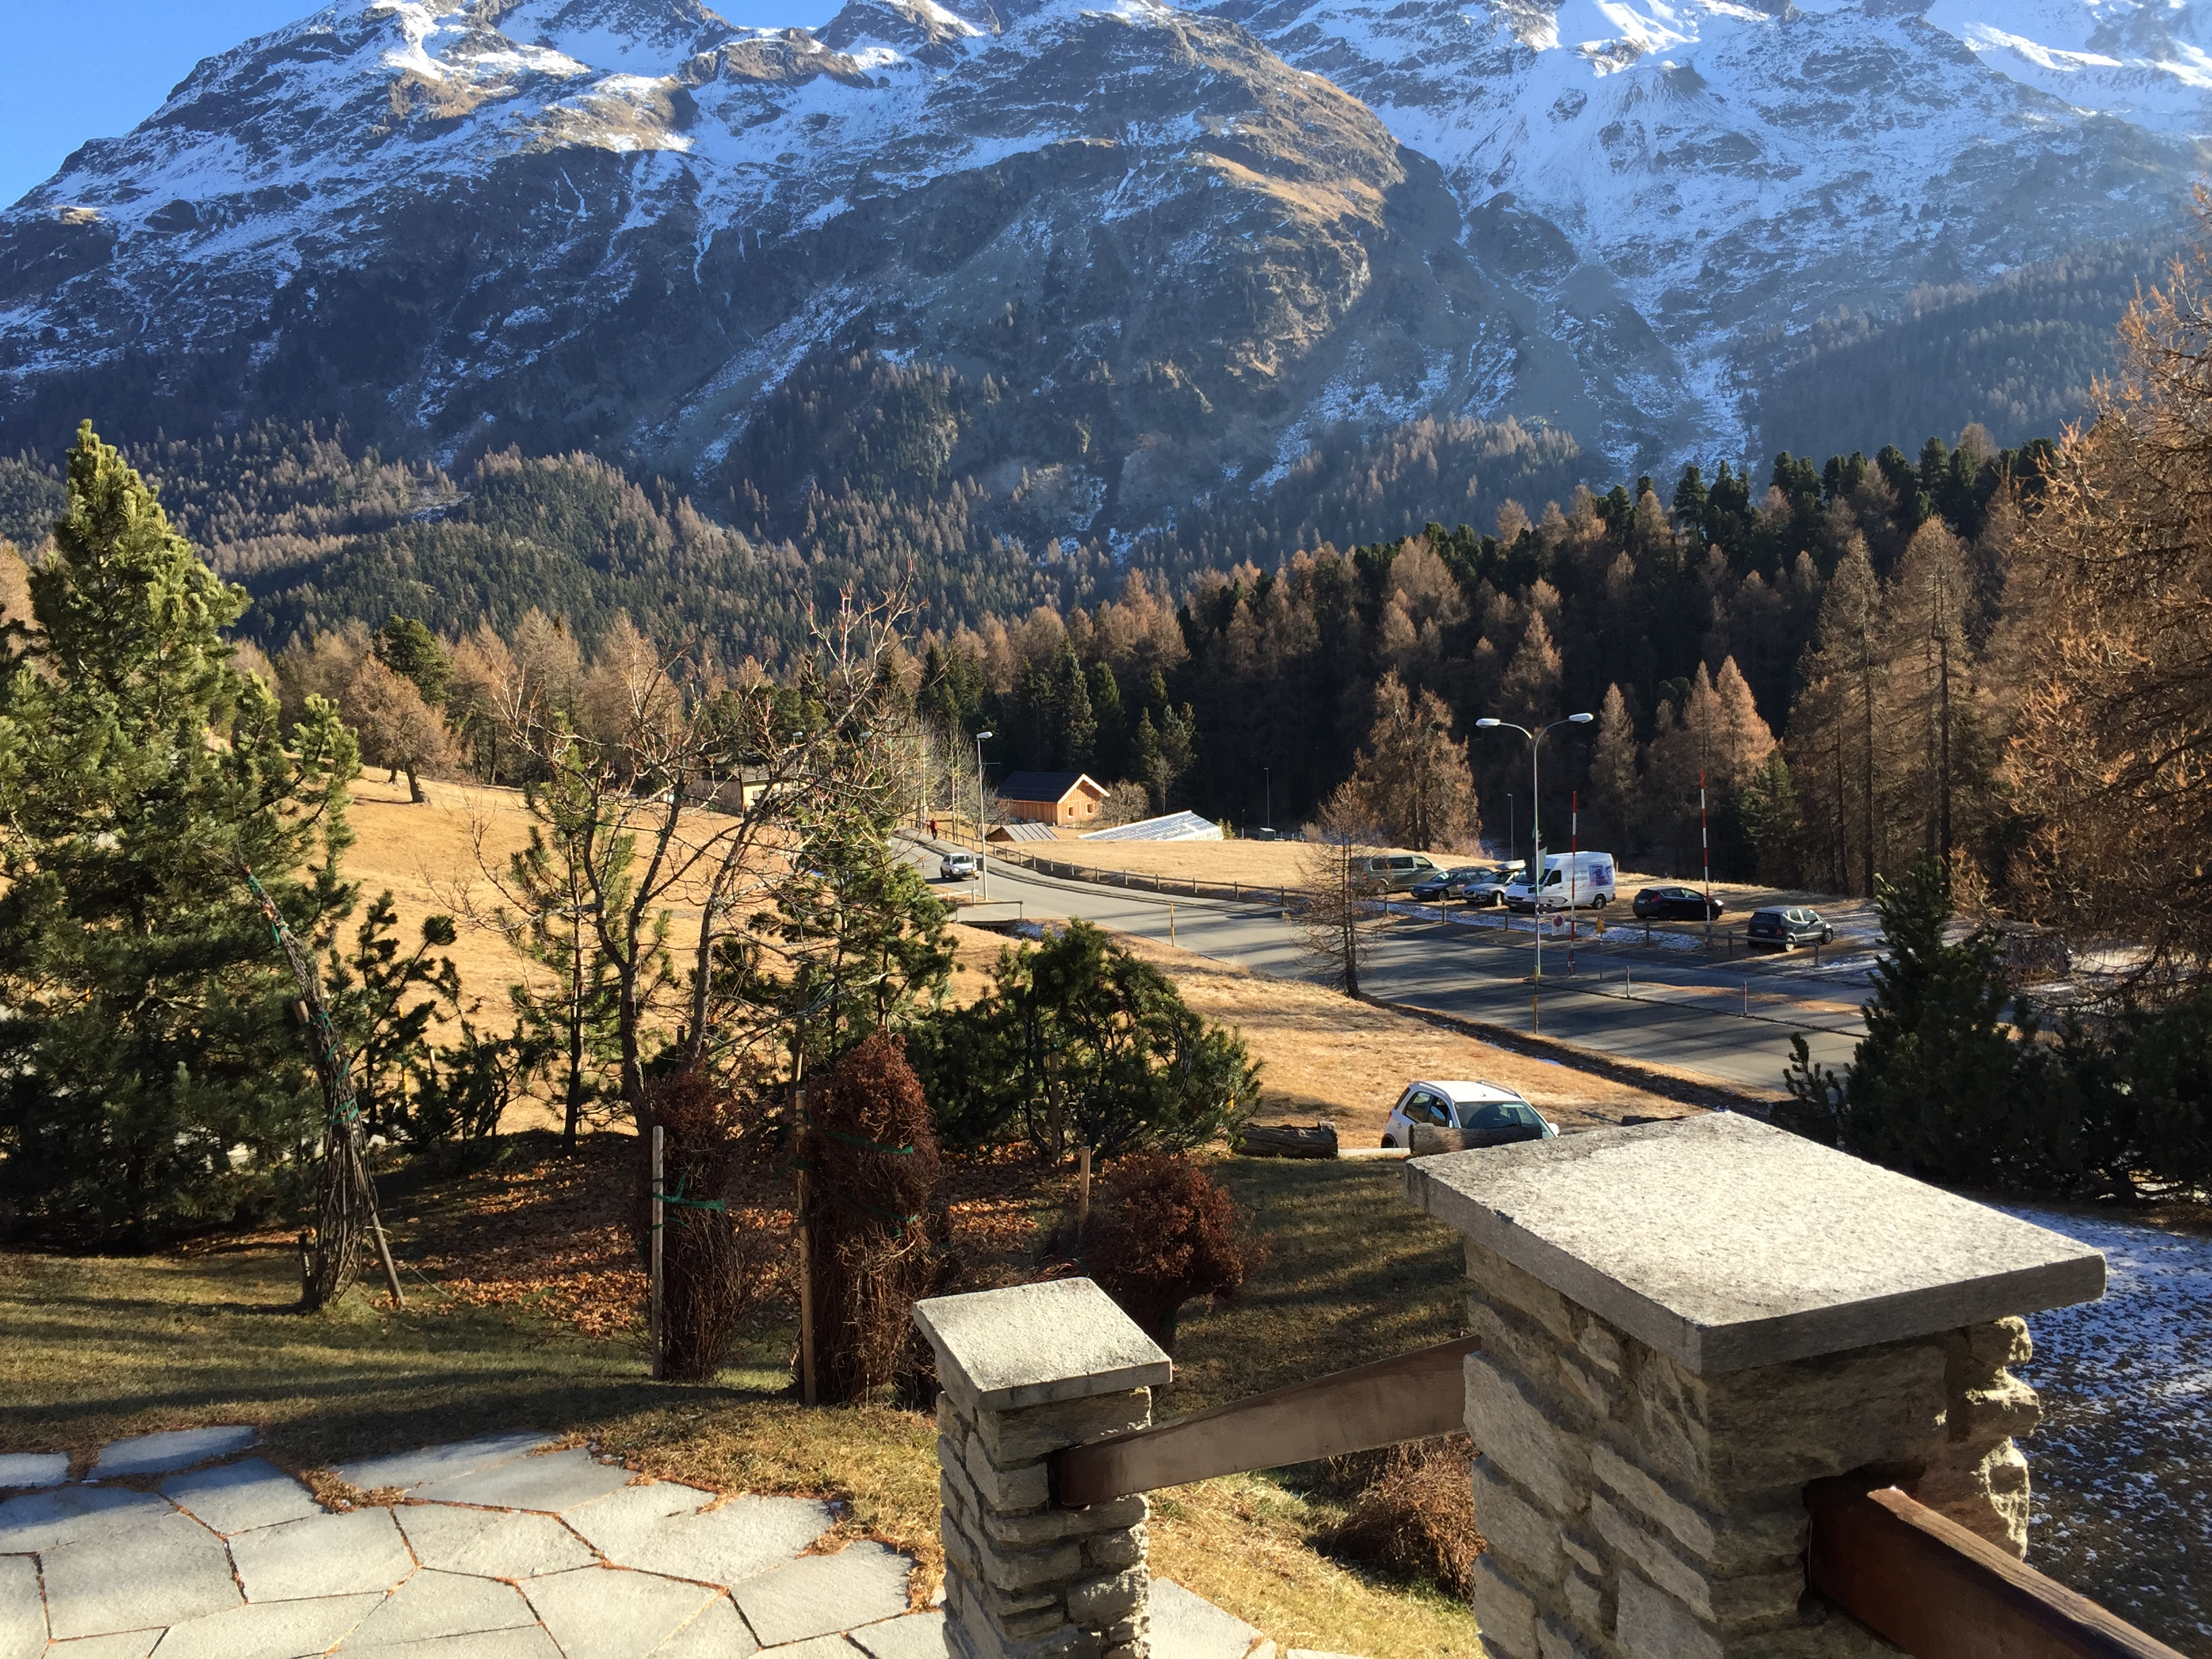 Single Family Home for Sale at Villa at Suvretta St. Moritz, Grisons, Switzerland